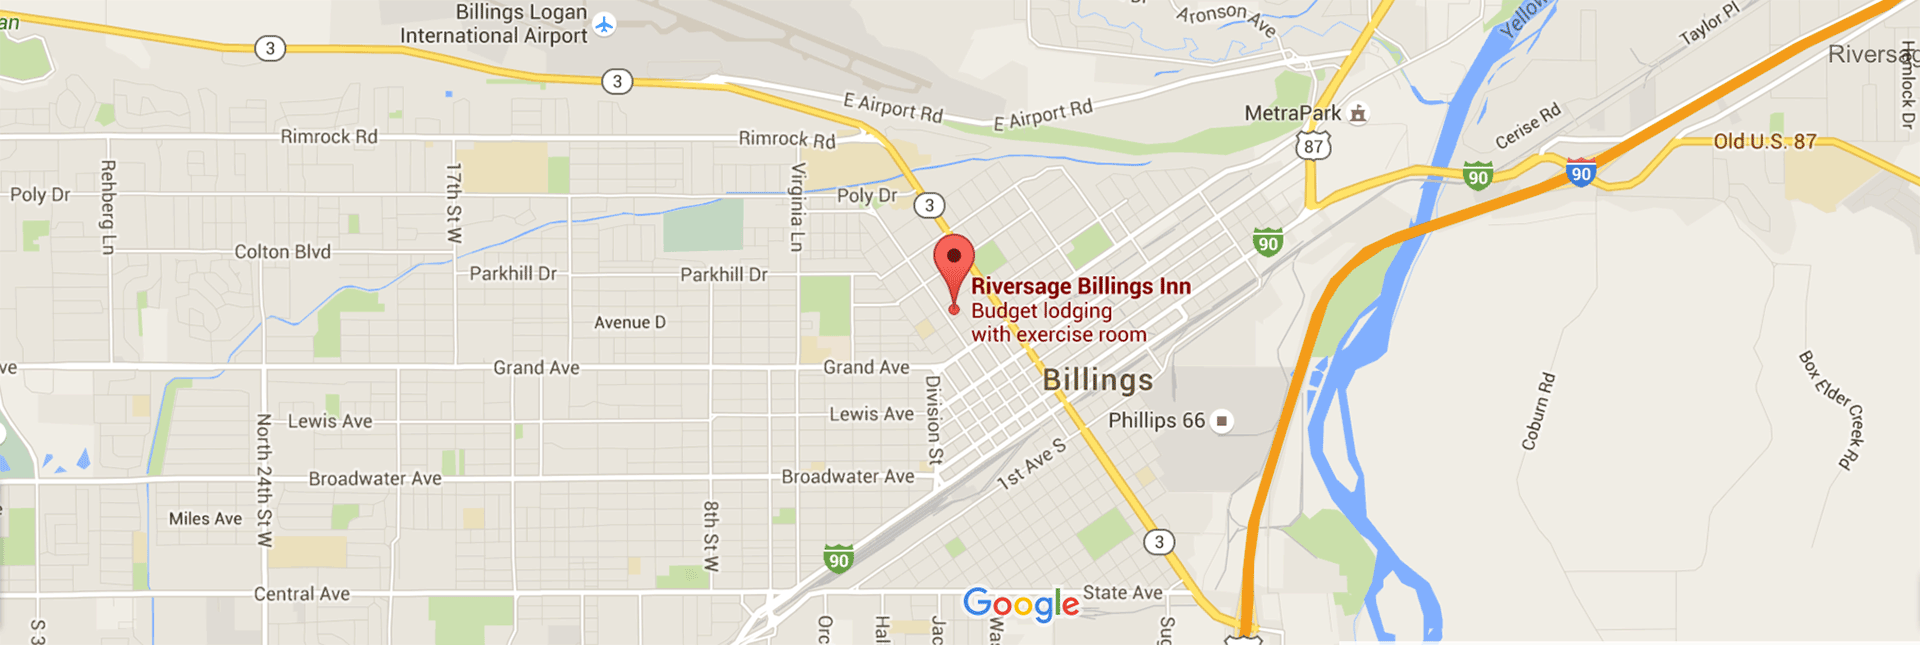 Contact Information and Location Directions for Riversage Billings ...